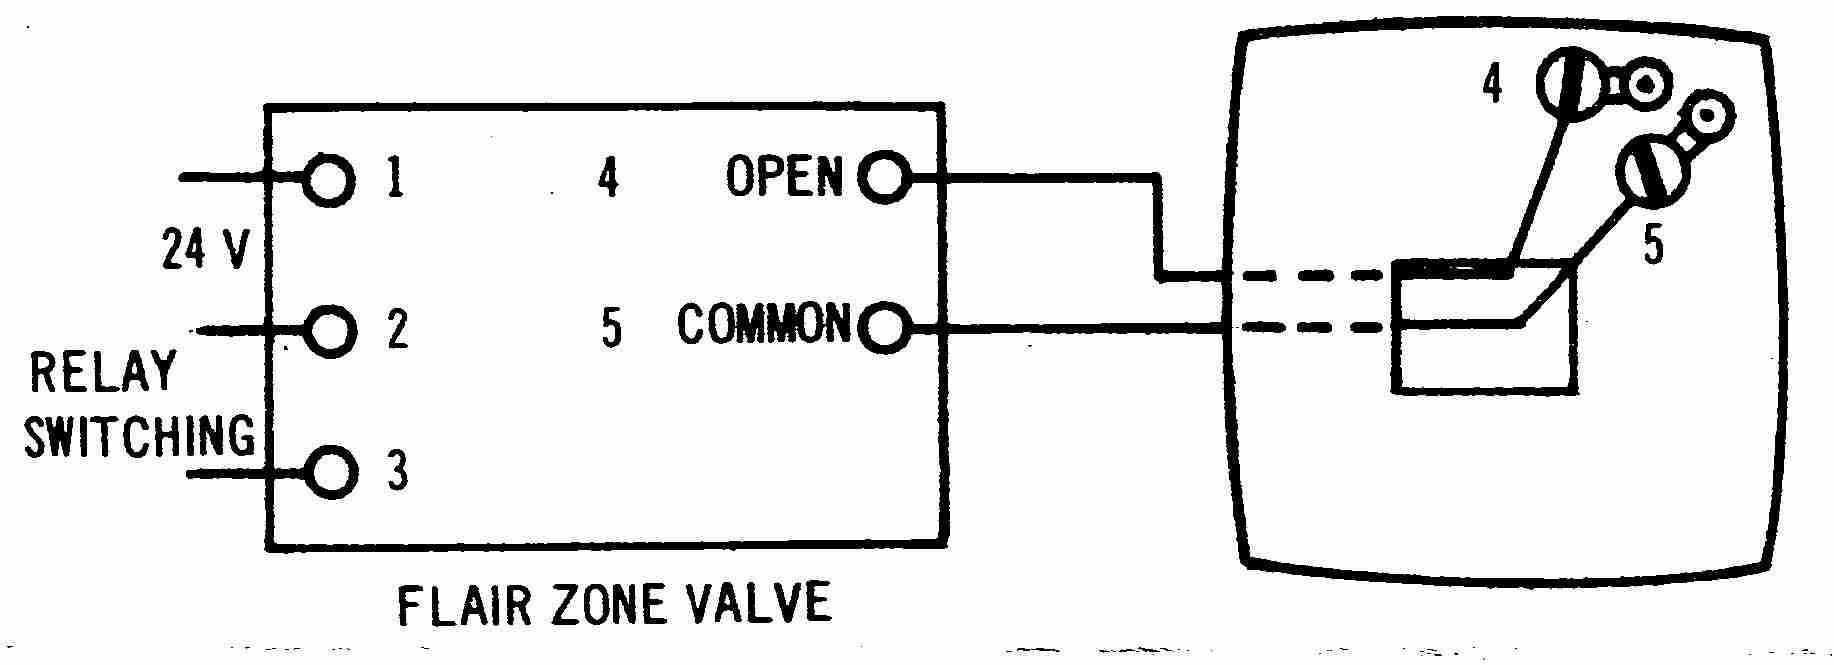 Flair2w_001_DJFc1 room thermostat wiring diagrams for hvac systems fcu wiring diagram at virtualis.co